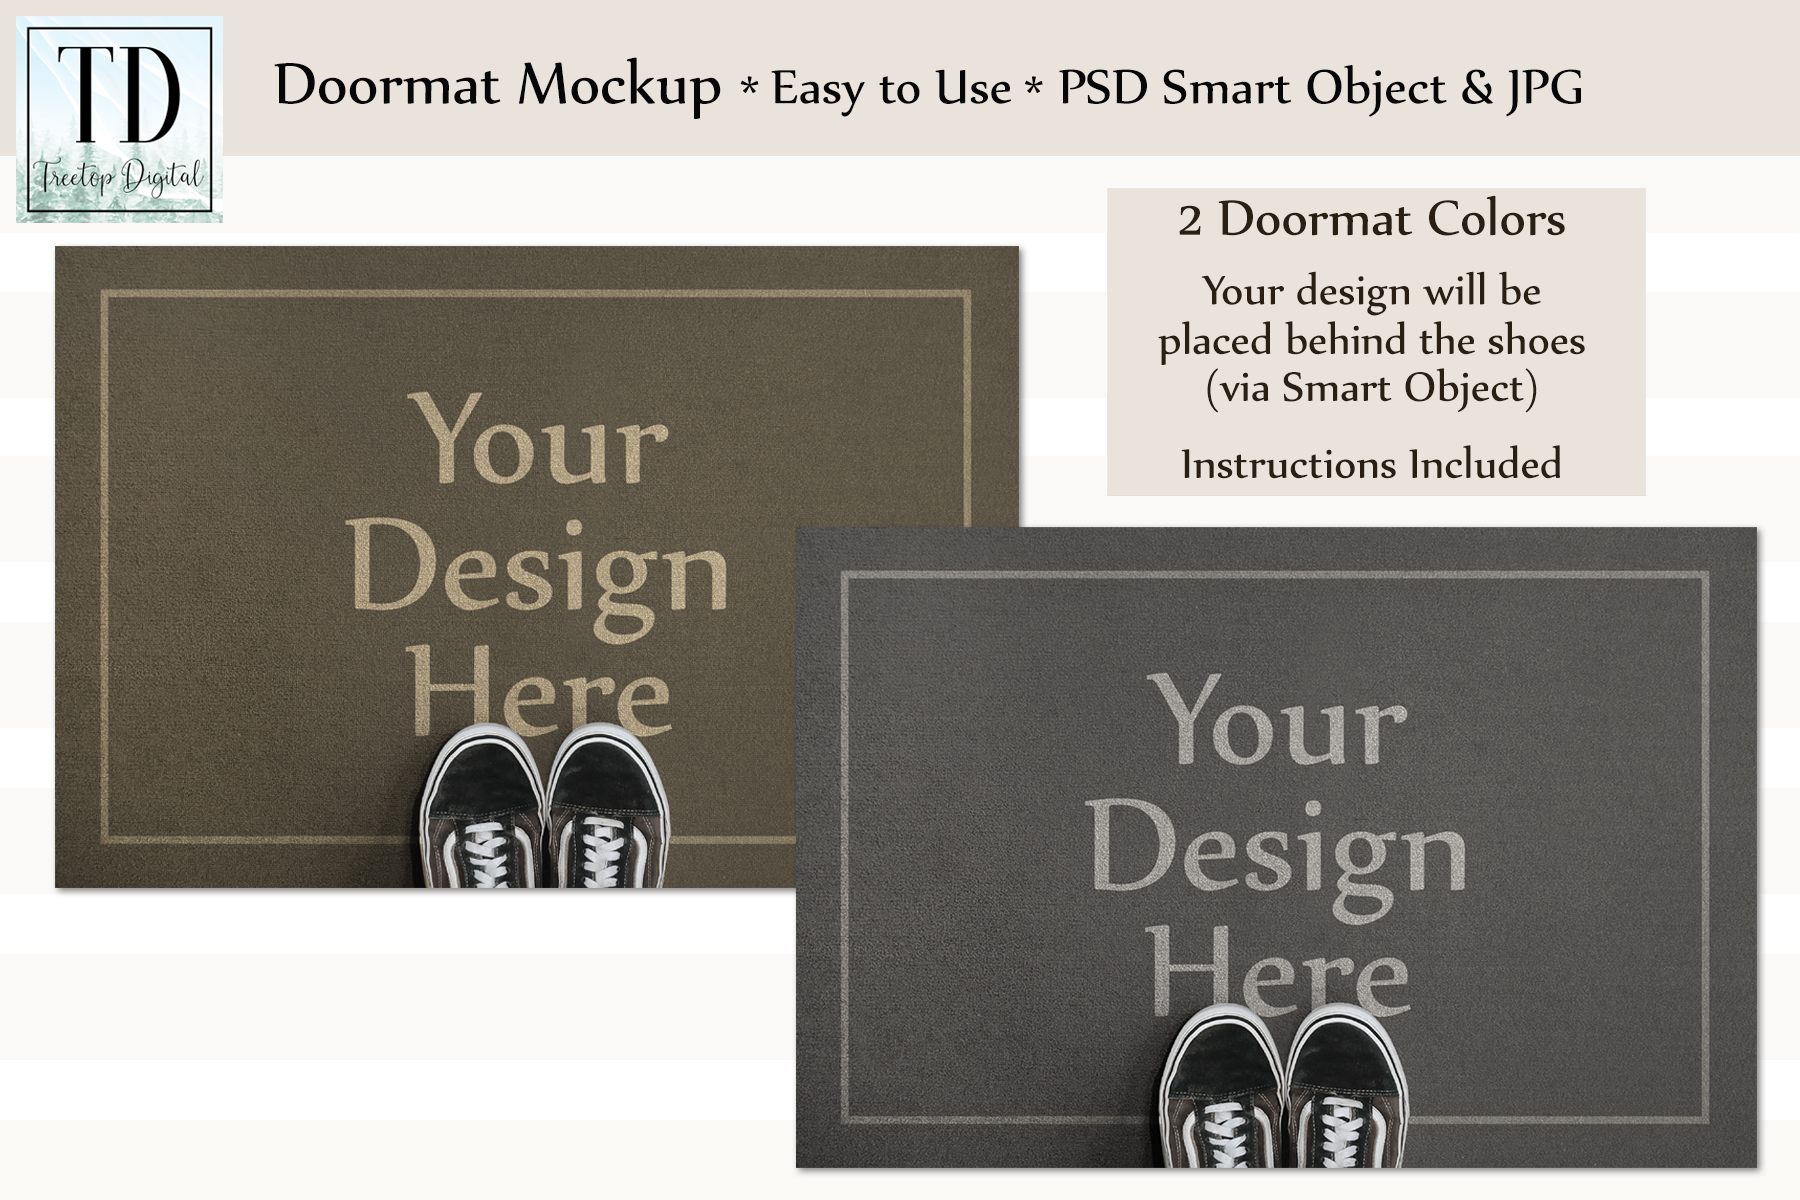 Doormat Mockup, Welcome Mat Mock Up, PSD, Smart Object & JPG example image 1